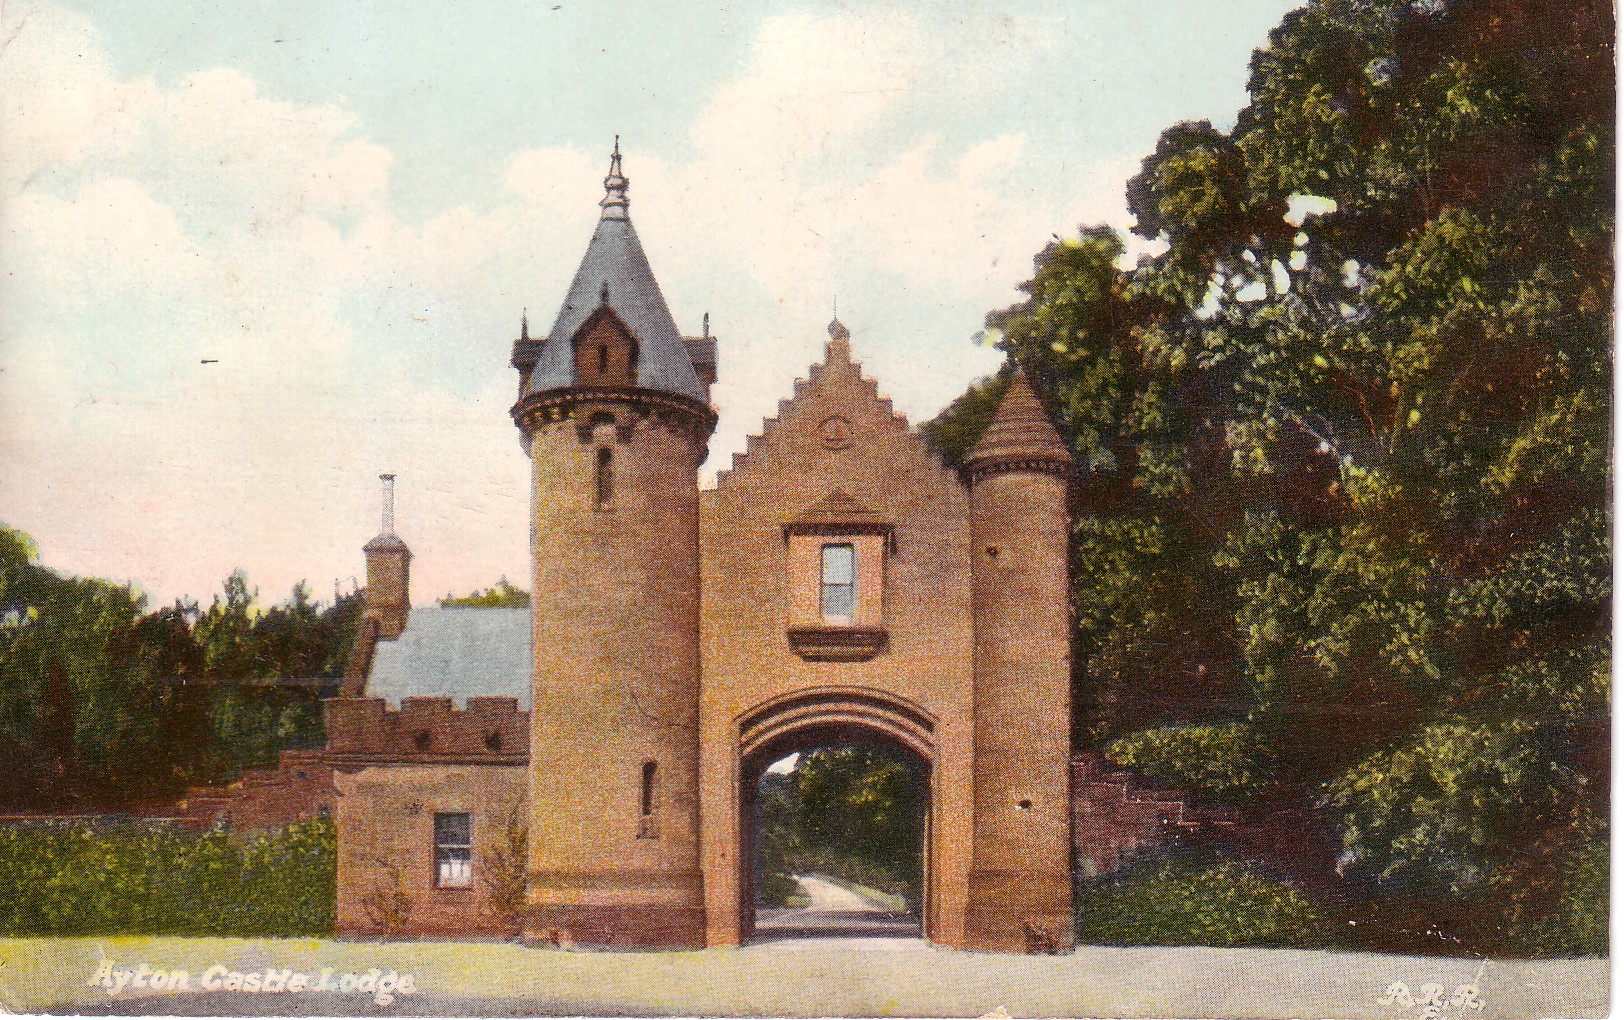 Ayton Castle Lodge